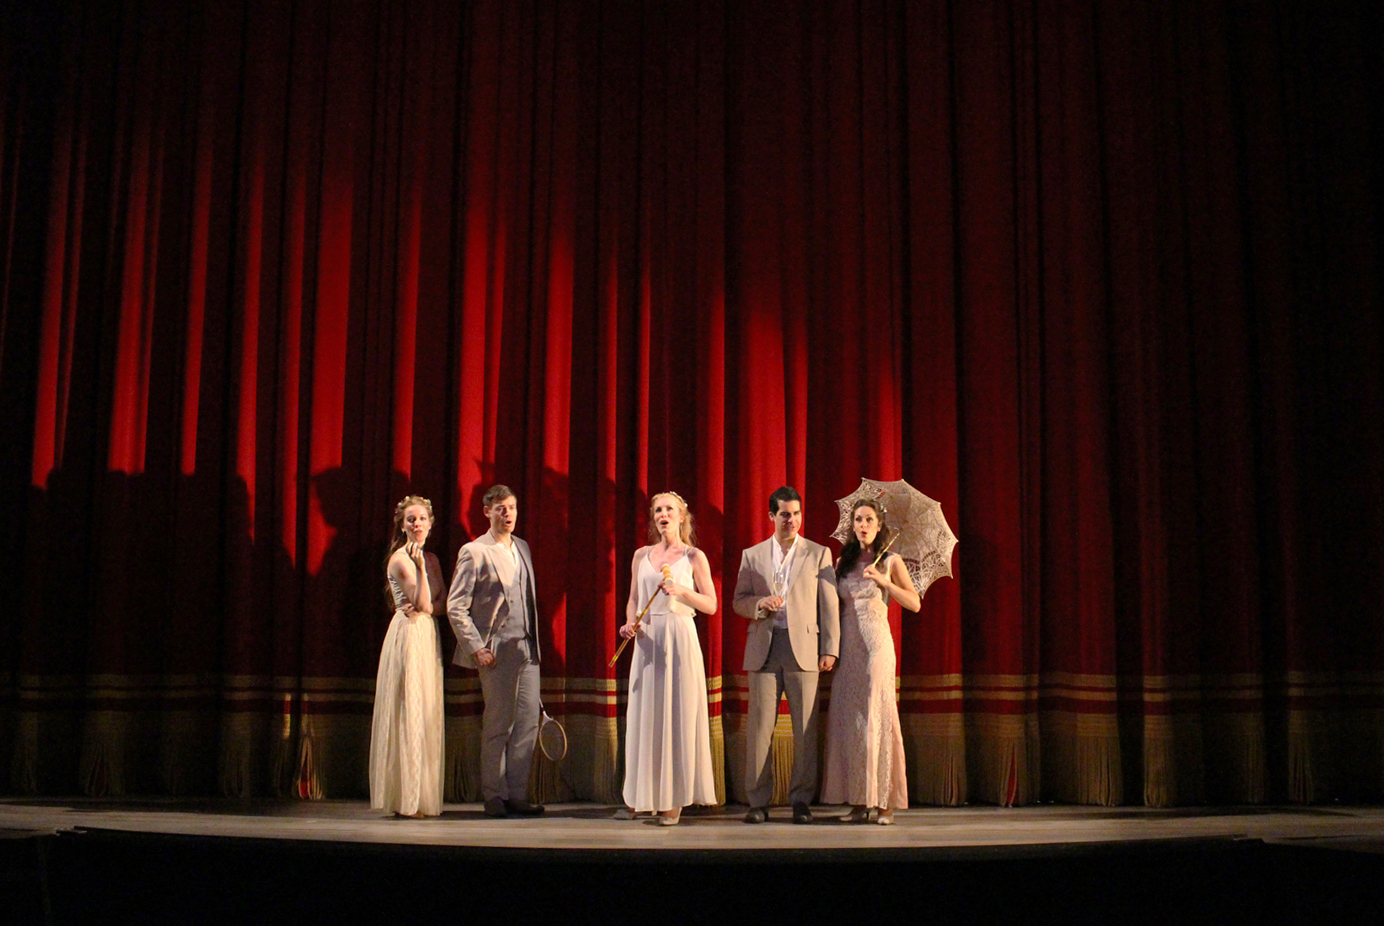 Act II also begins with Liebeslieder singers in front of red curtain